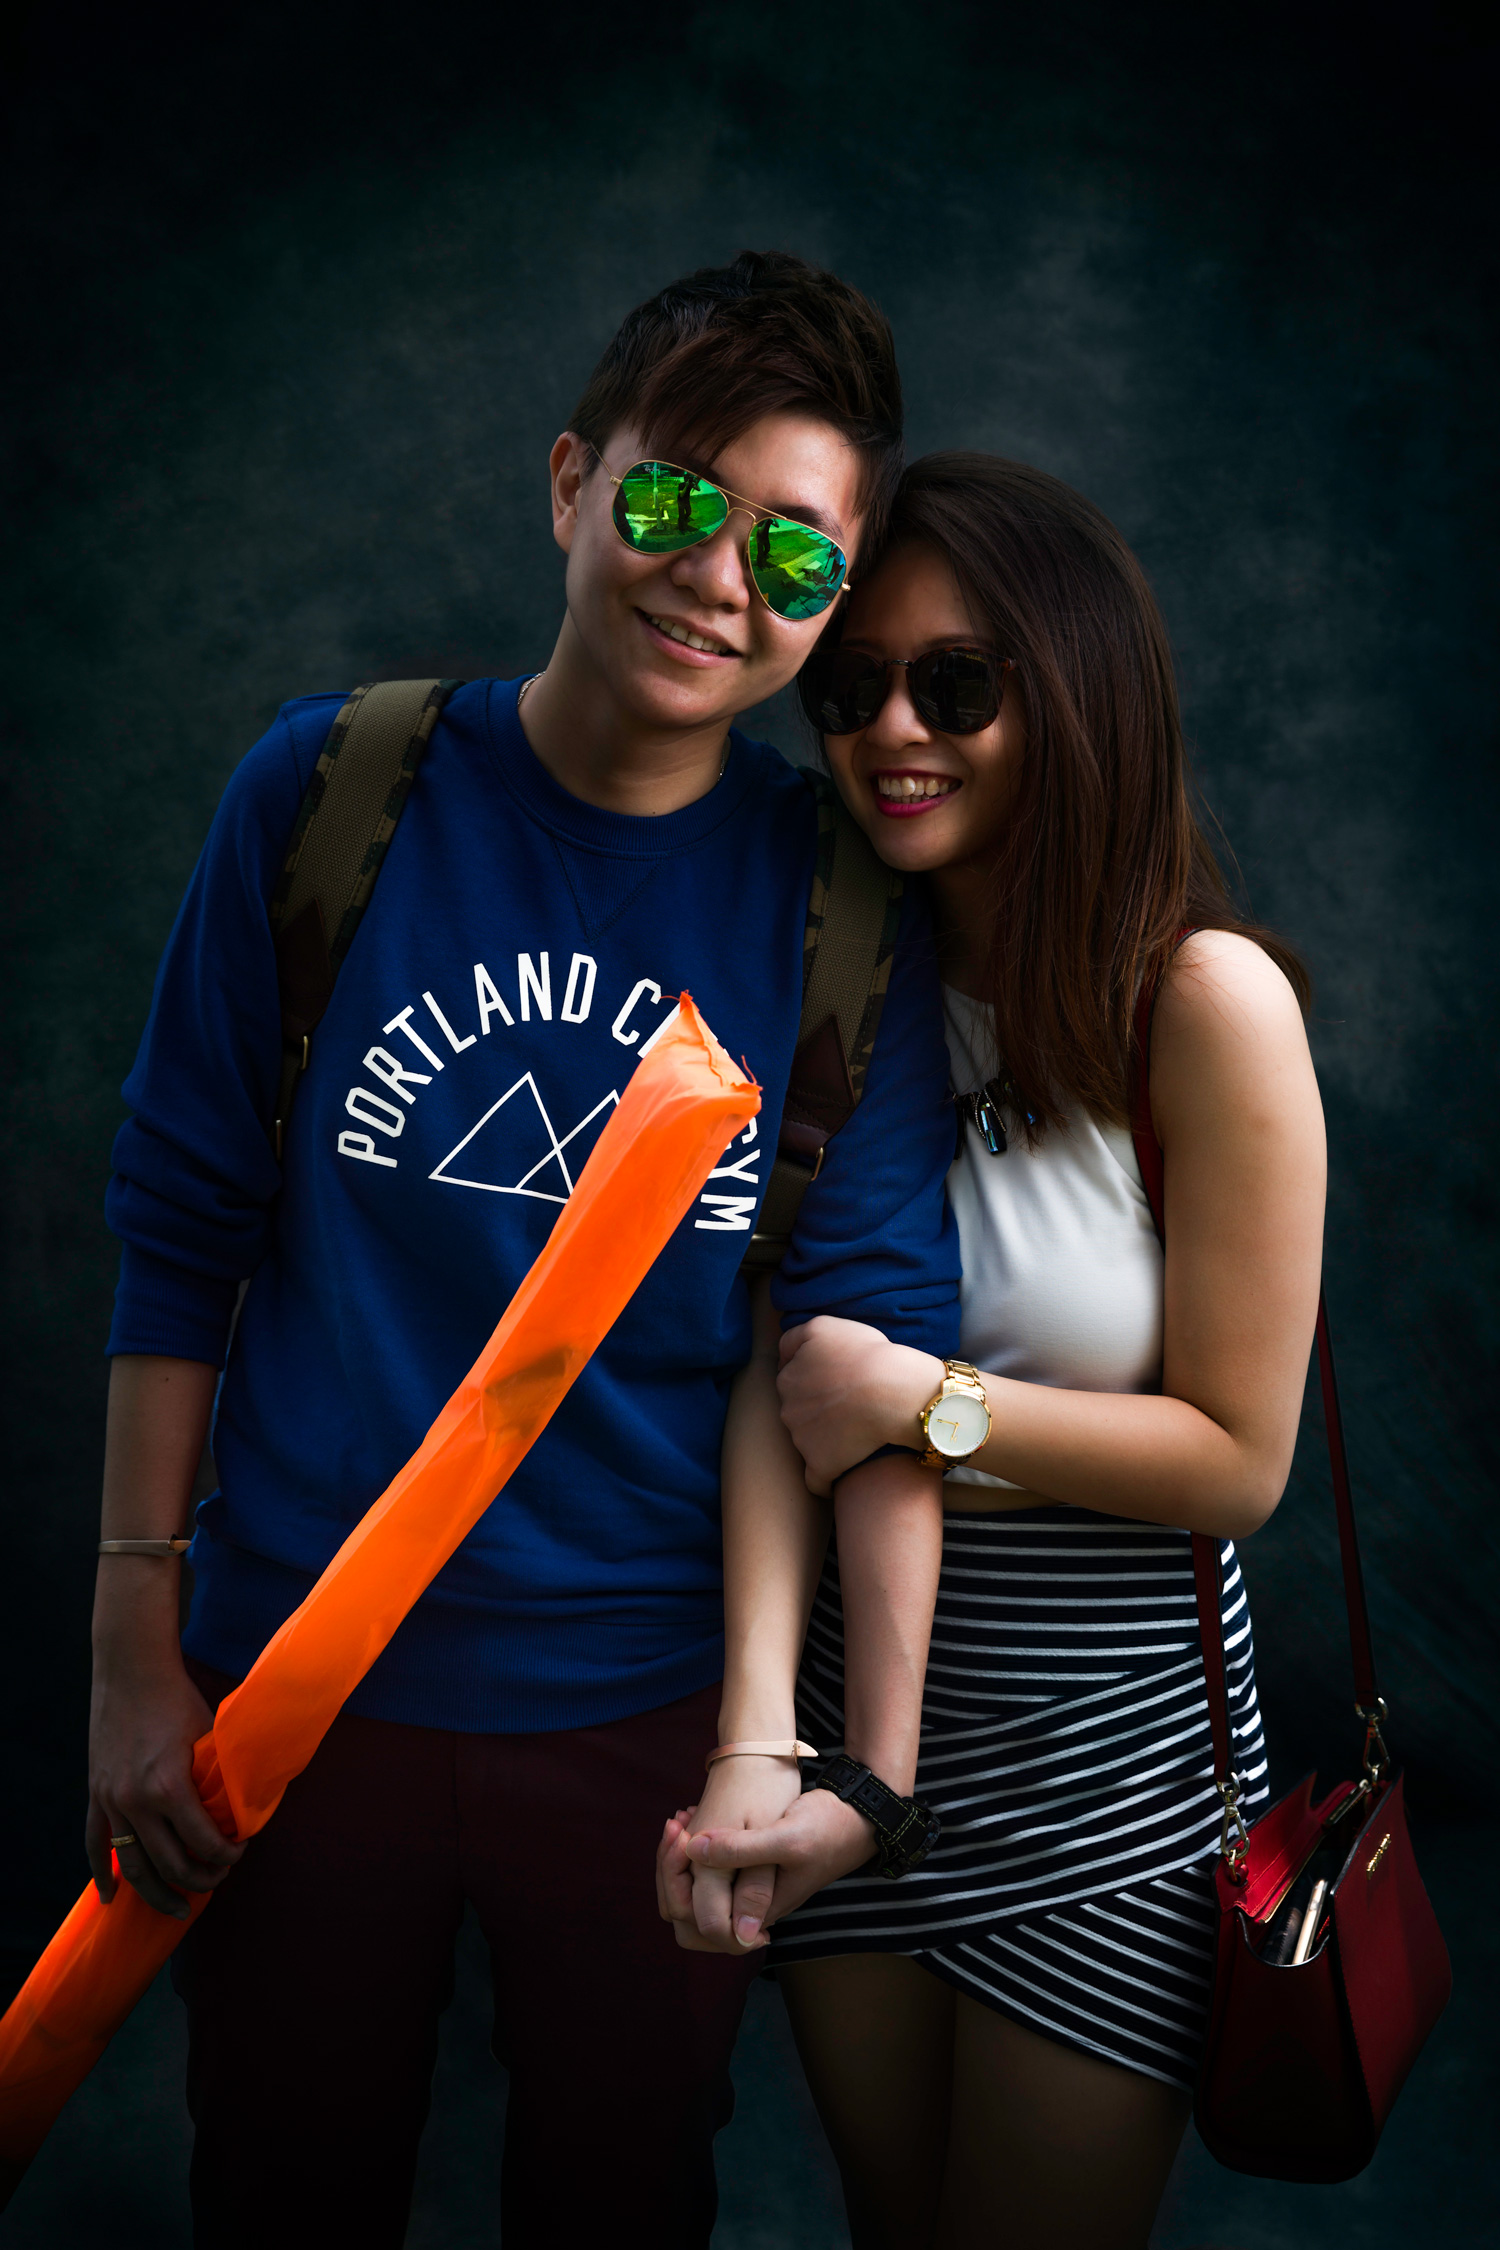 Whiteney & Zihui   We are about to call it a day but when we saw this cool looking couple in shades walking towards us, we just simply couldn't resist!  P.S: We saw them from afar having fun posing at the car park so we figured it was ideal to give them a photoshoot!